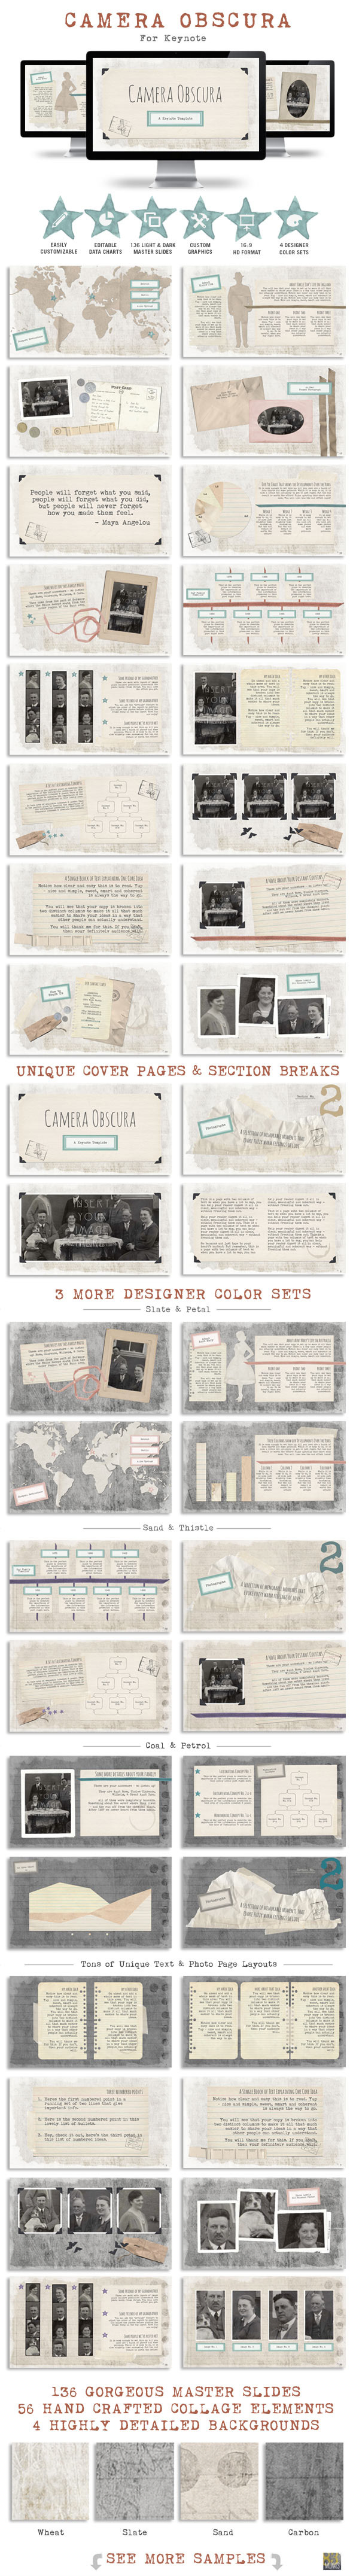 GraphicRiver Camera Obscura Keynote Presentation Template 11445265